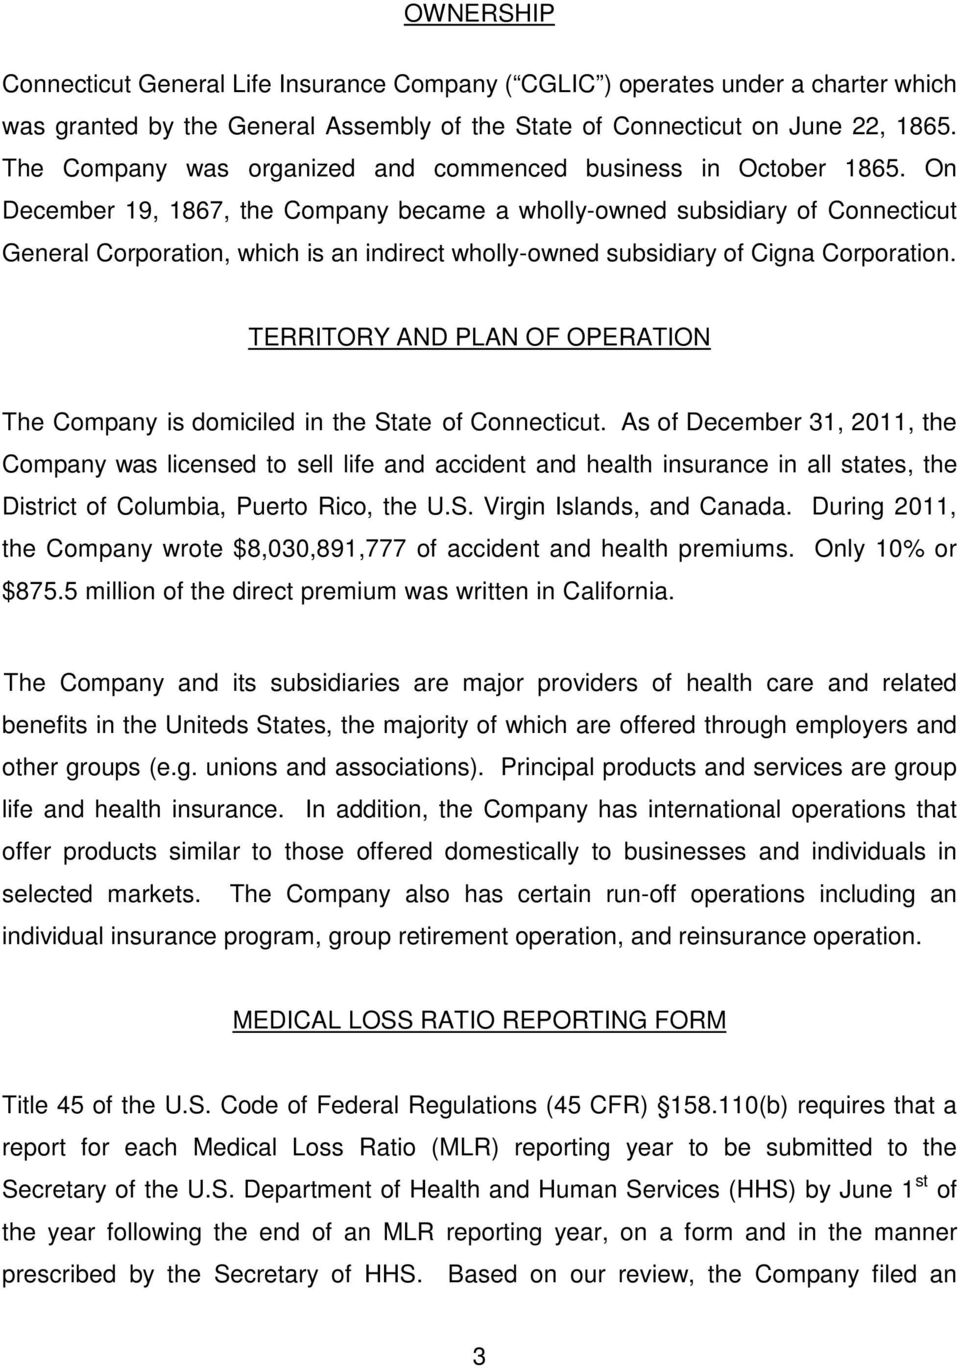 On December 19, 1867, the Company became a wholly-owned subsidiary of Connecticut General Corporation, which is an indirect wholly-owned subsidiary of Cigna Corporation.